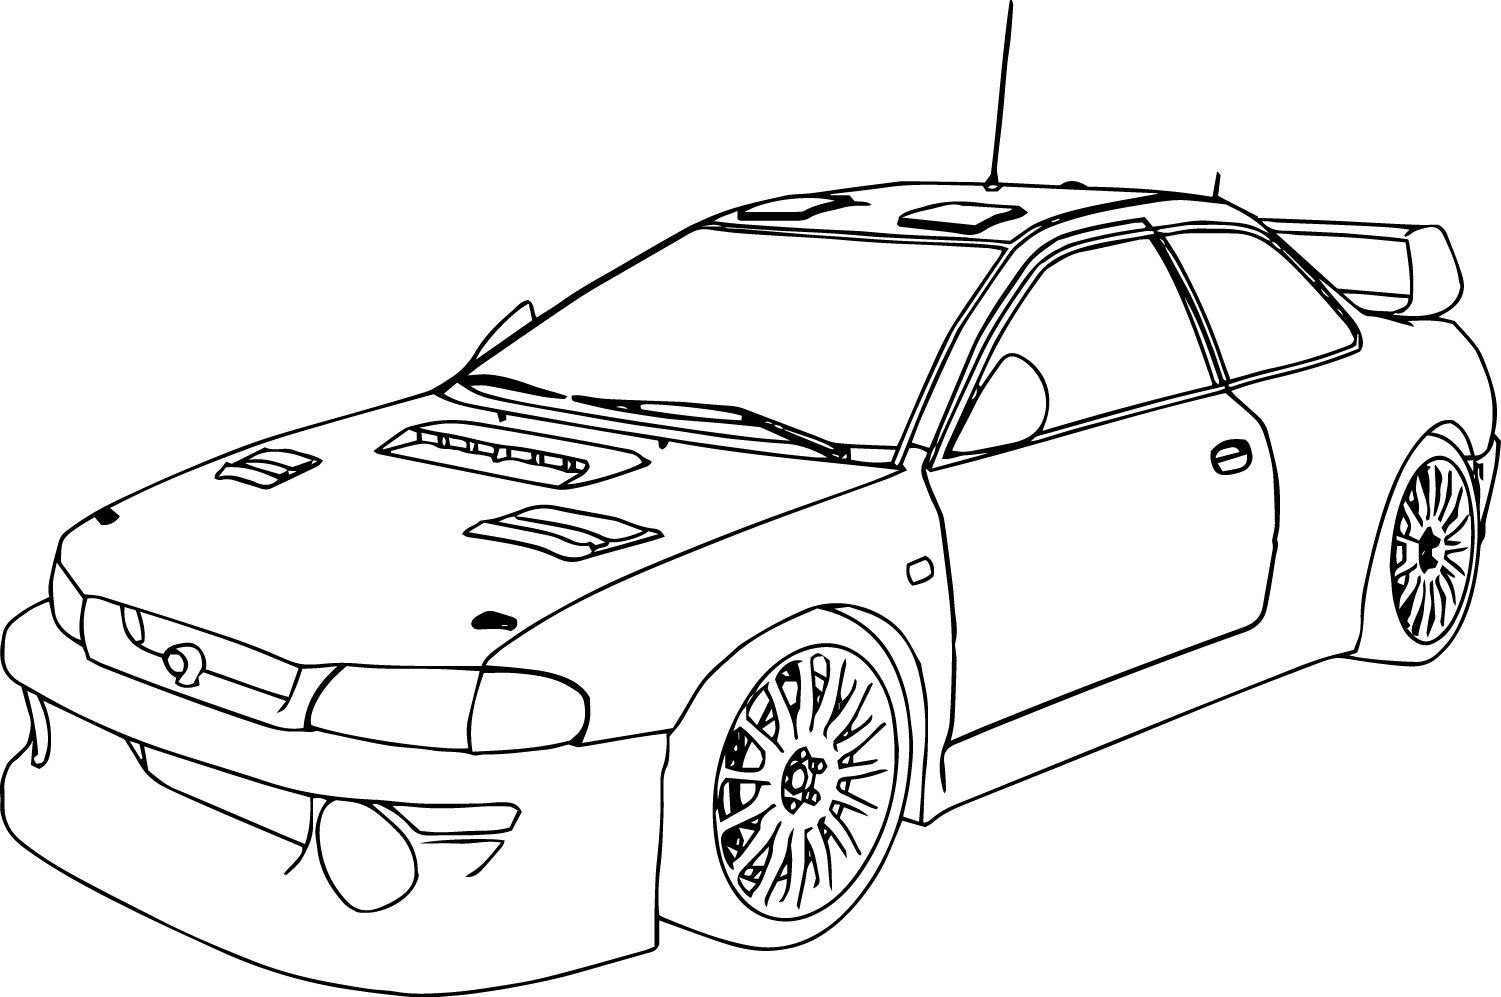 car pictures to colour in free printable sports coloring pages for kids pictures to colour in car